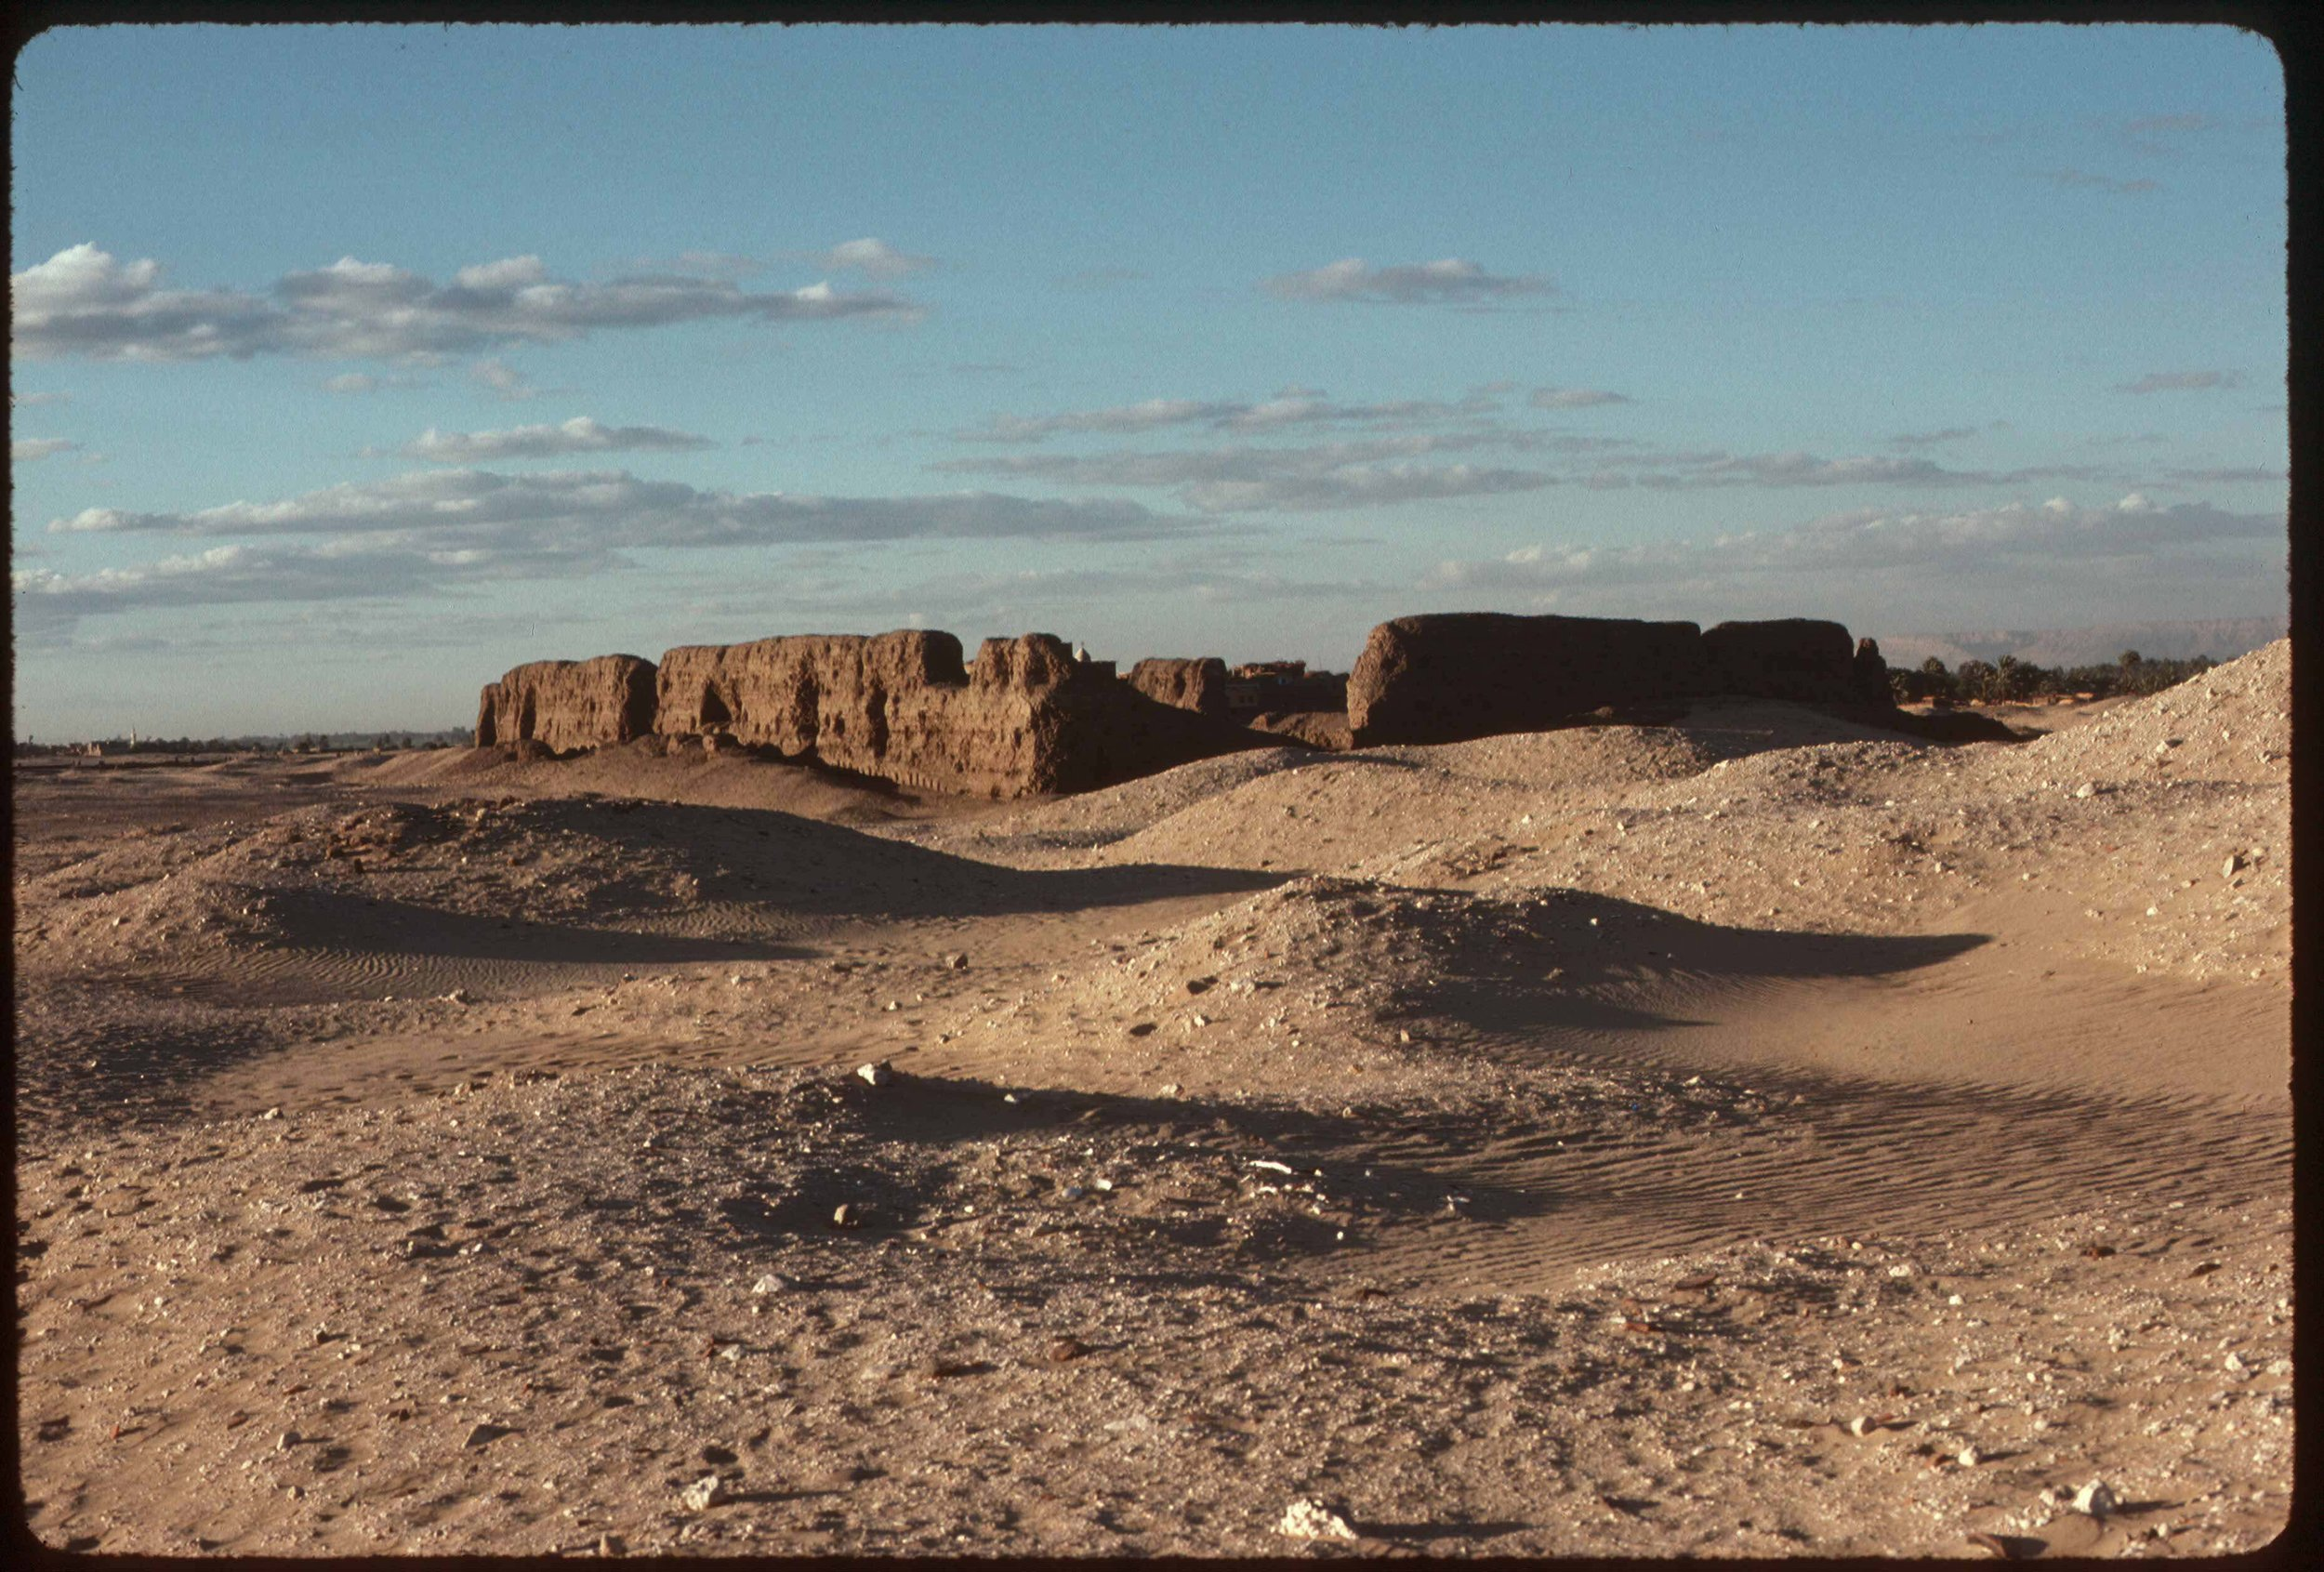 Fig. 1. Second Dynasty cult enclosure of King Khasekhemwy (c. 2700 BCE) — the Shunet el-Zebib, looking north at sunset, 1988. Photo: David O'Connor © North Abydos Expedition (formerly Penn-Yale-IFA), courtesy of the Penn Museum